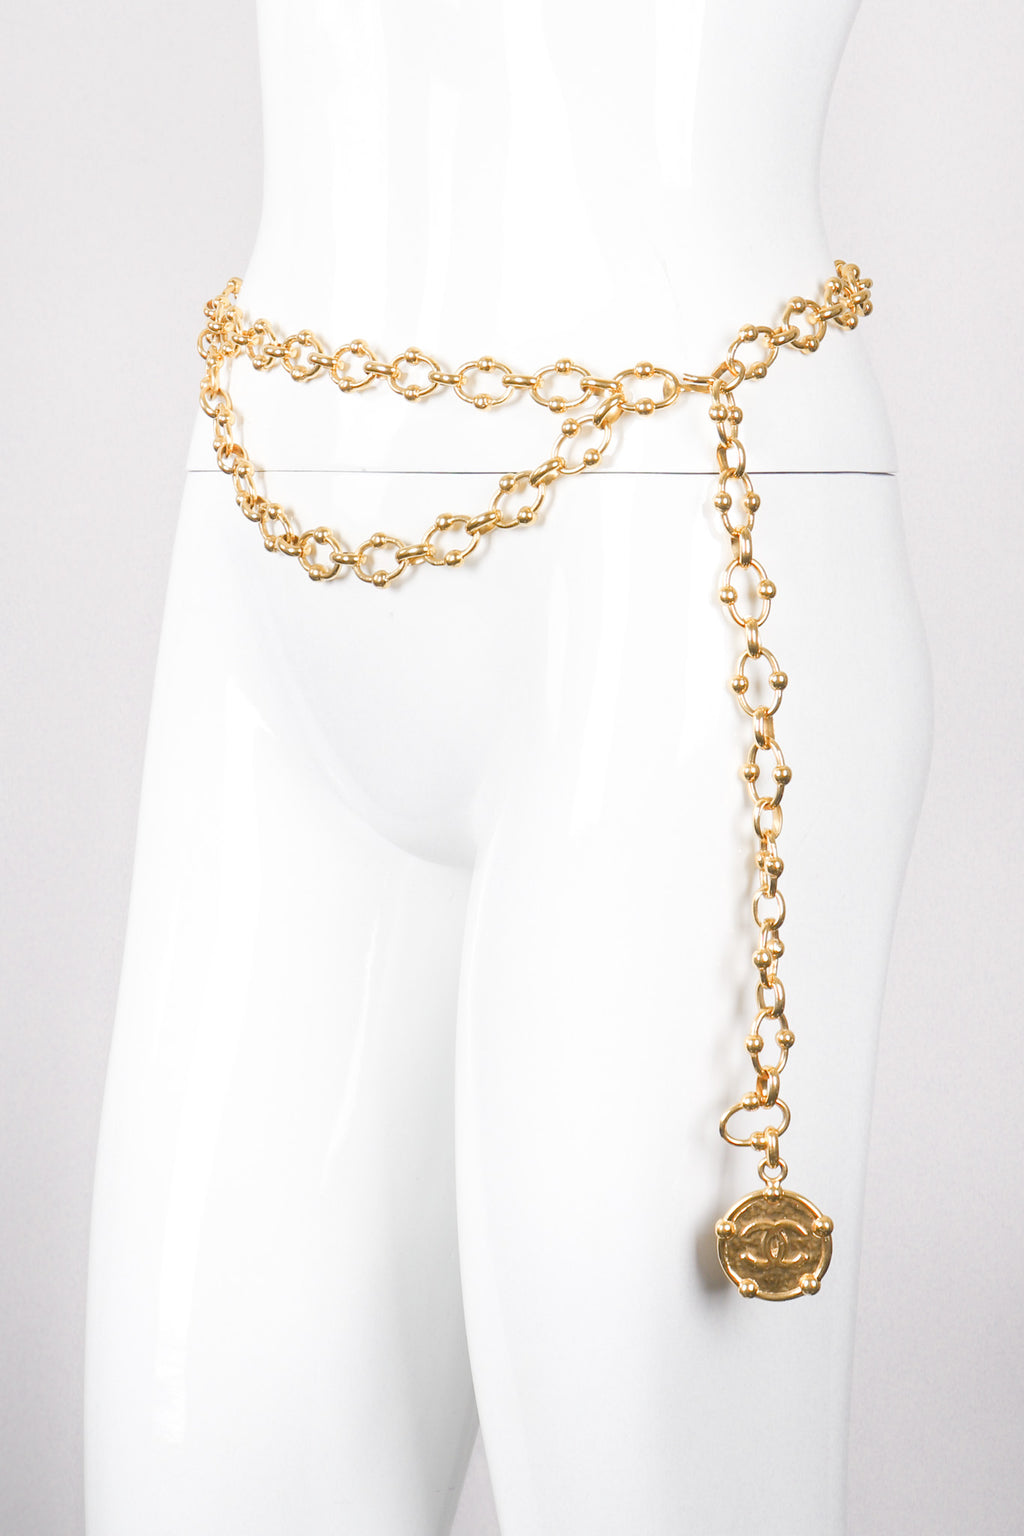 Vintage Chanel CC Medallion Ball Link Gold Chain Belt Recess Los Angeles LA